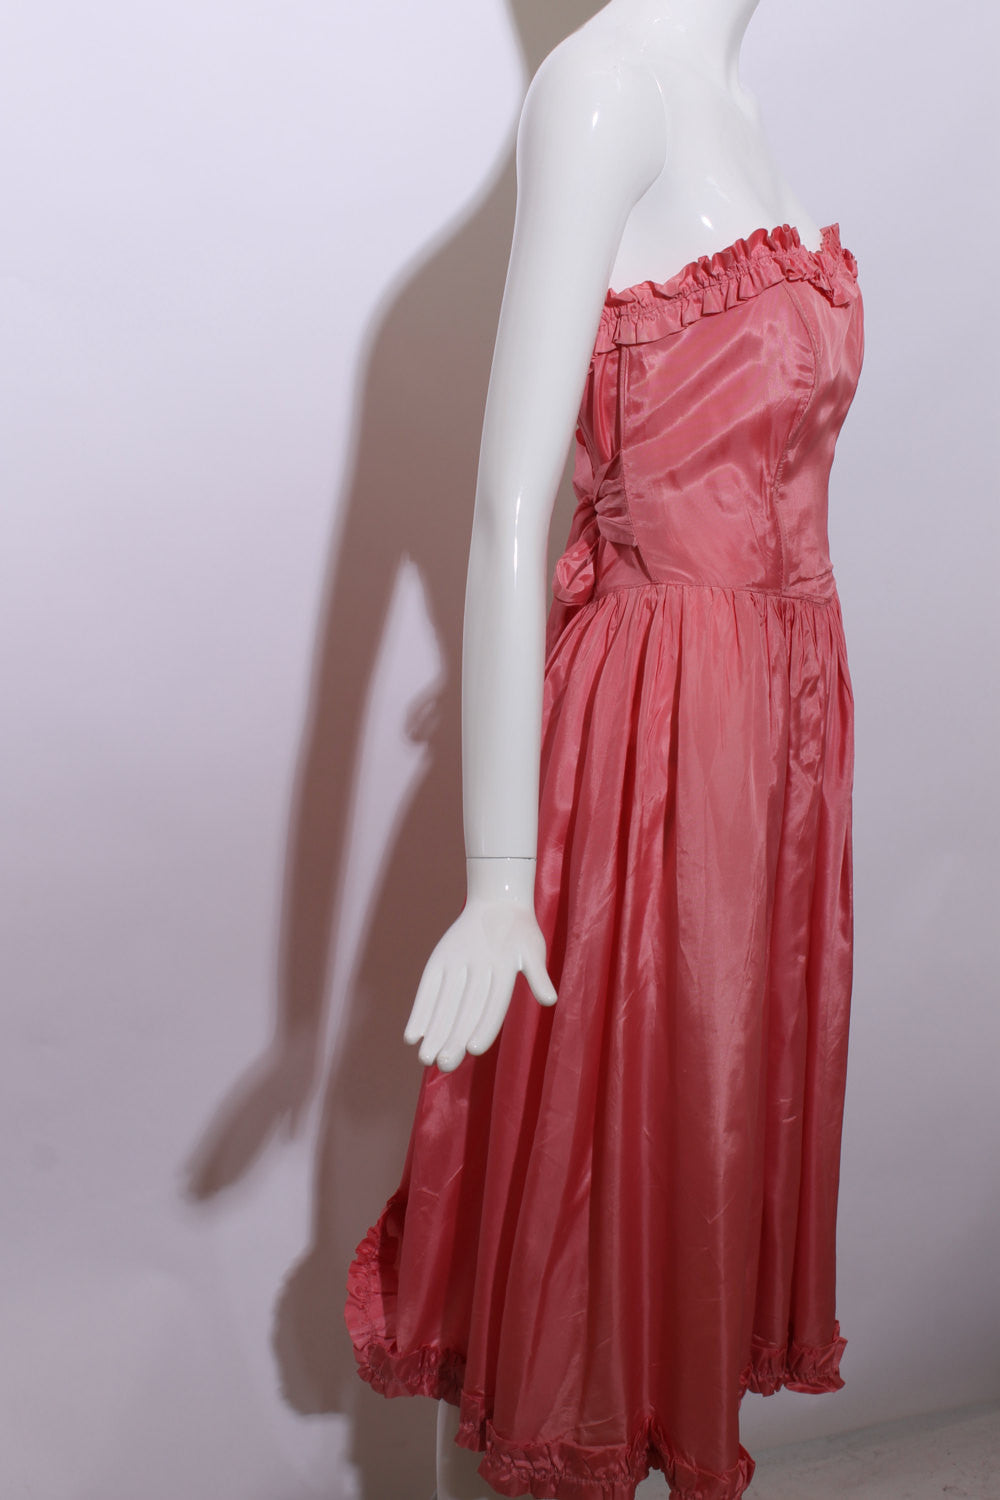 vintage 1950's 50's strapless pink taffeta gown ruffle ball party formal corset bright bubblegum satin XS-S